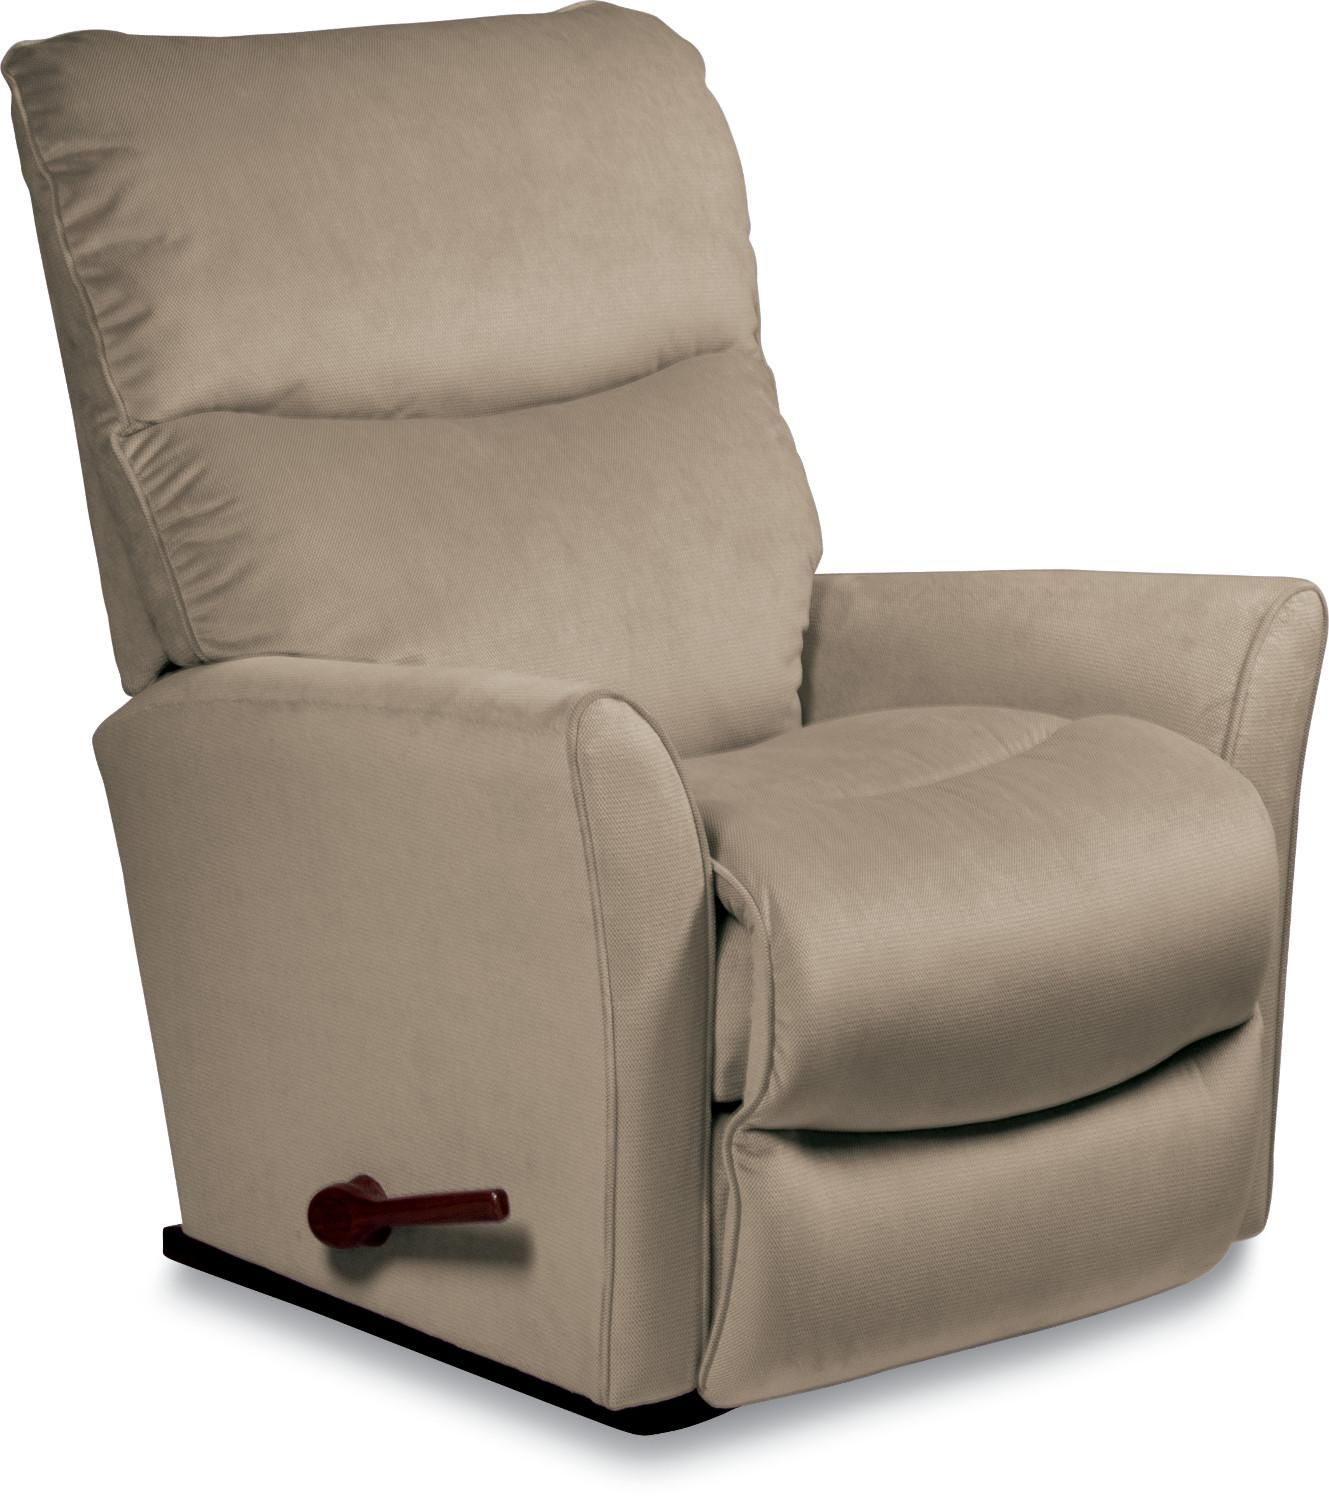 La z boy recliners buy one get one - This Is One Of Our Favorite La Z Boy Recliners And It Comes In So Many Color And Fabric Options Shopping At Sowell S Pinterest Recliner